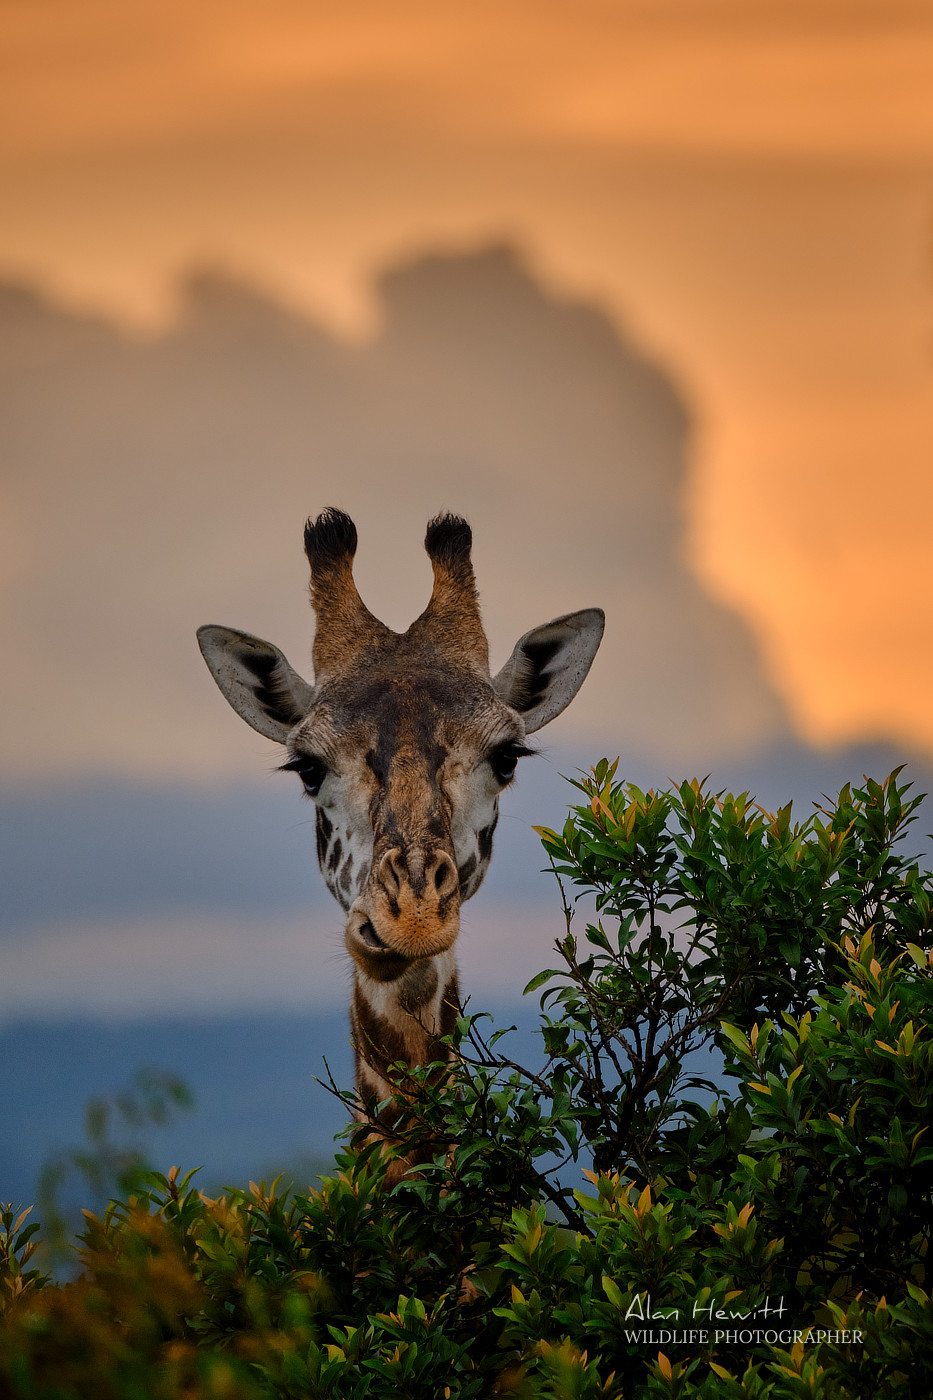 Giraffe Alan Hewitt Photography